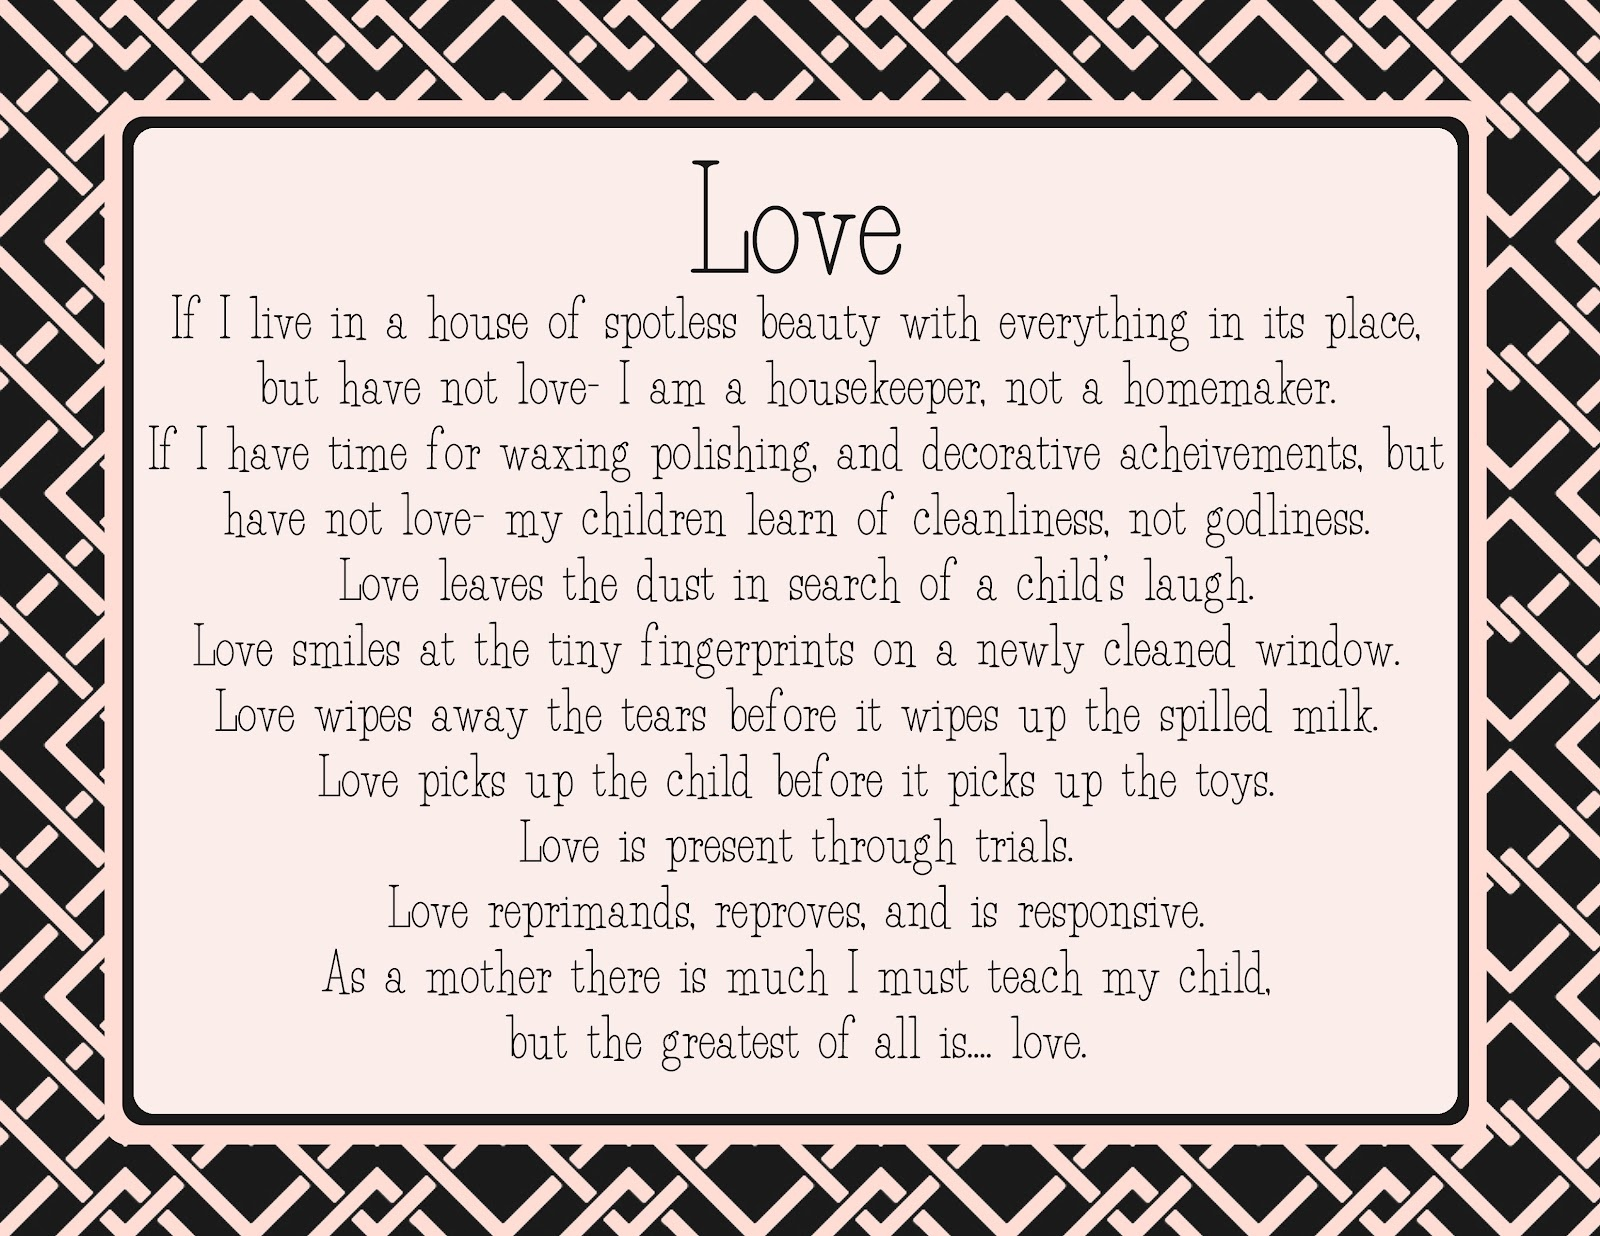 Love Poems For Him For Her For The One You Love For Your Boyfriend - Free Printable Romantic Poems